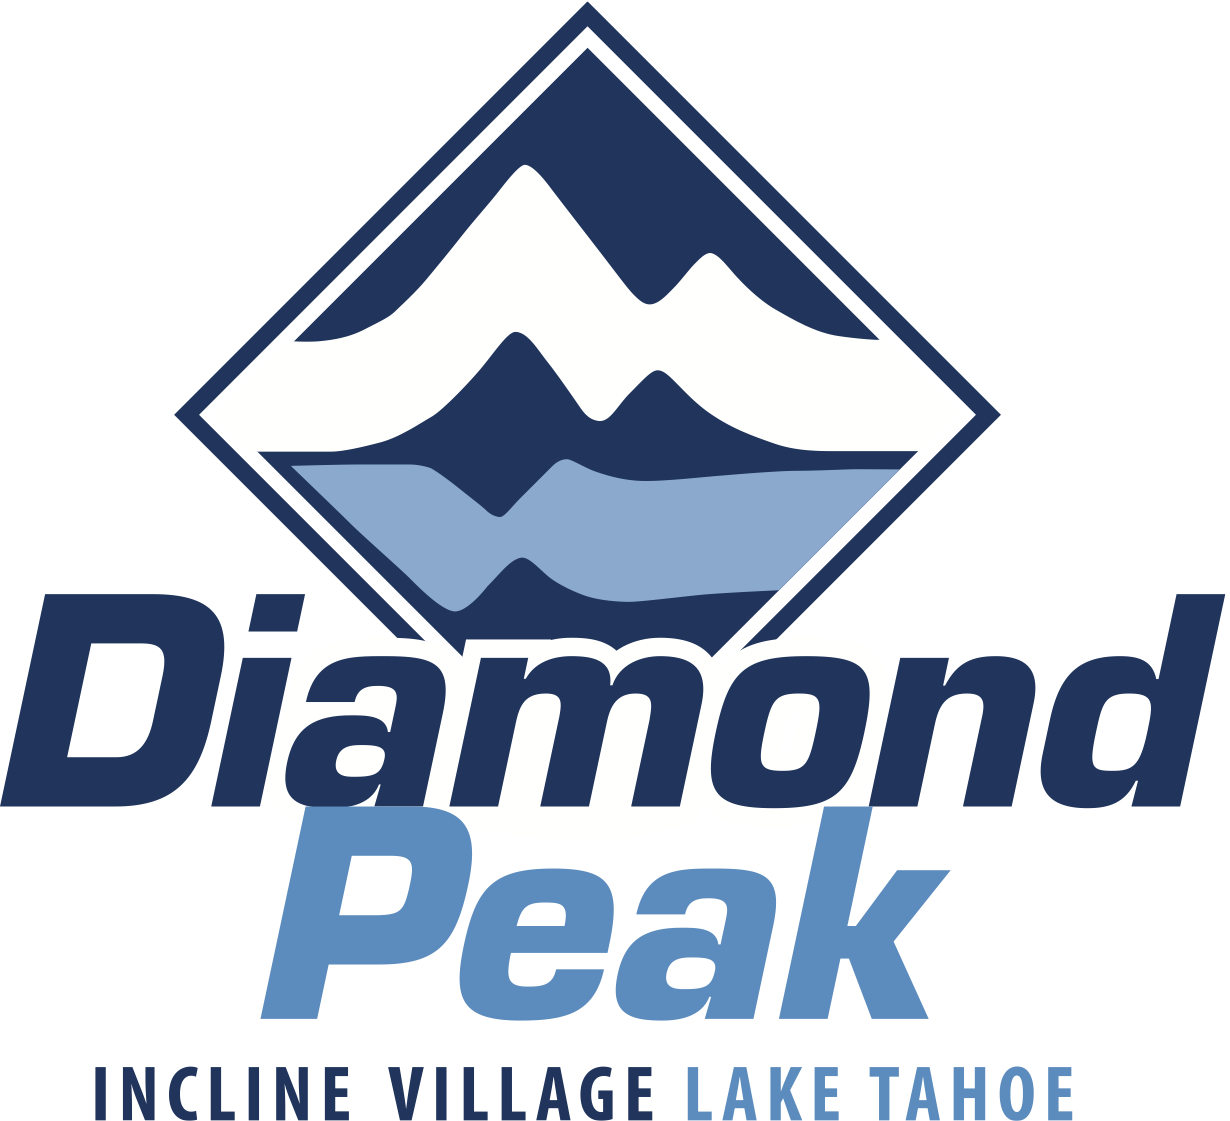 Diamond Peak Ski Resort.